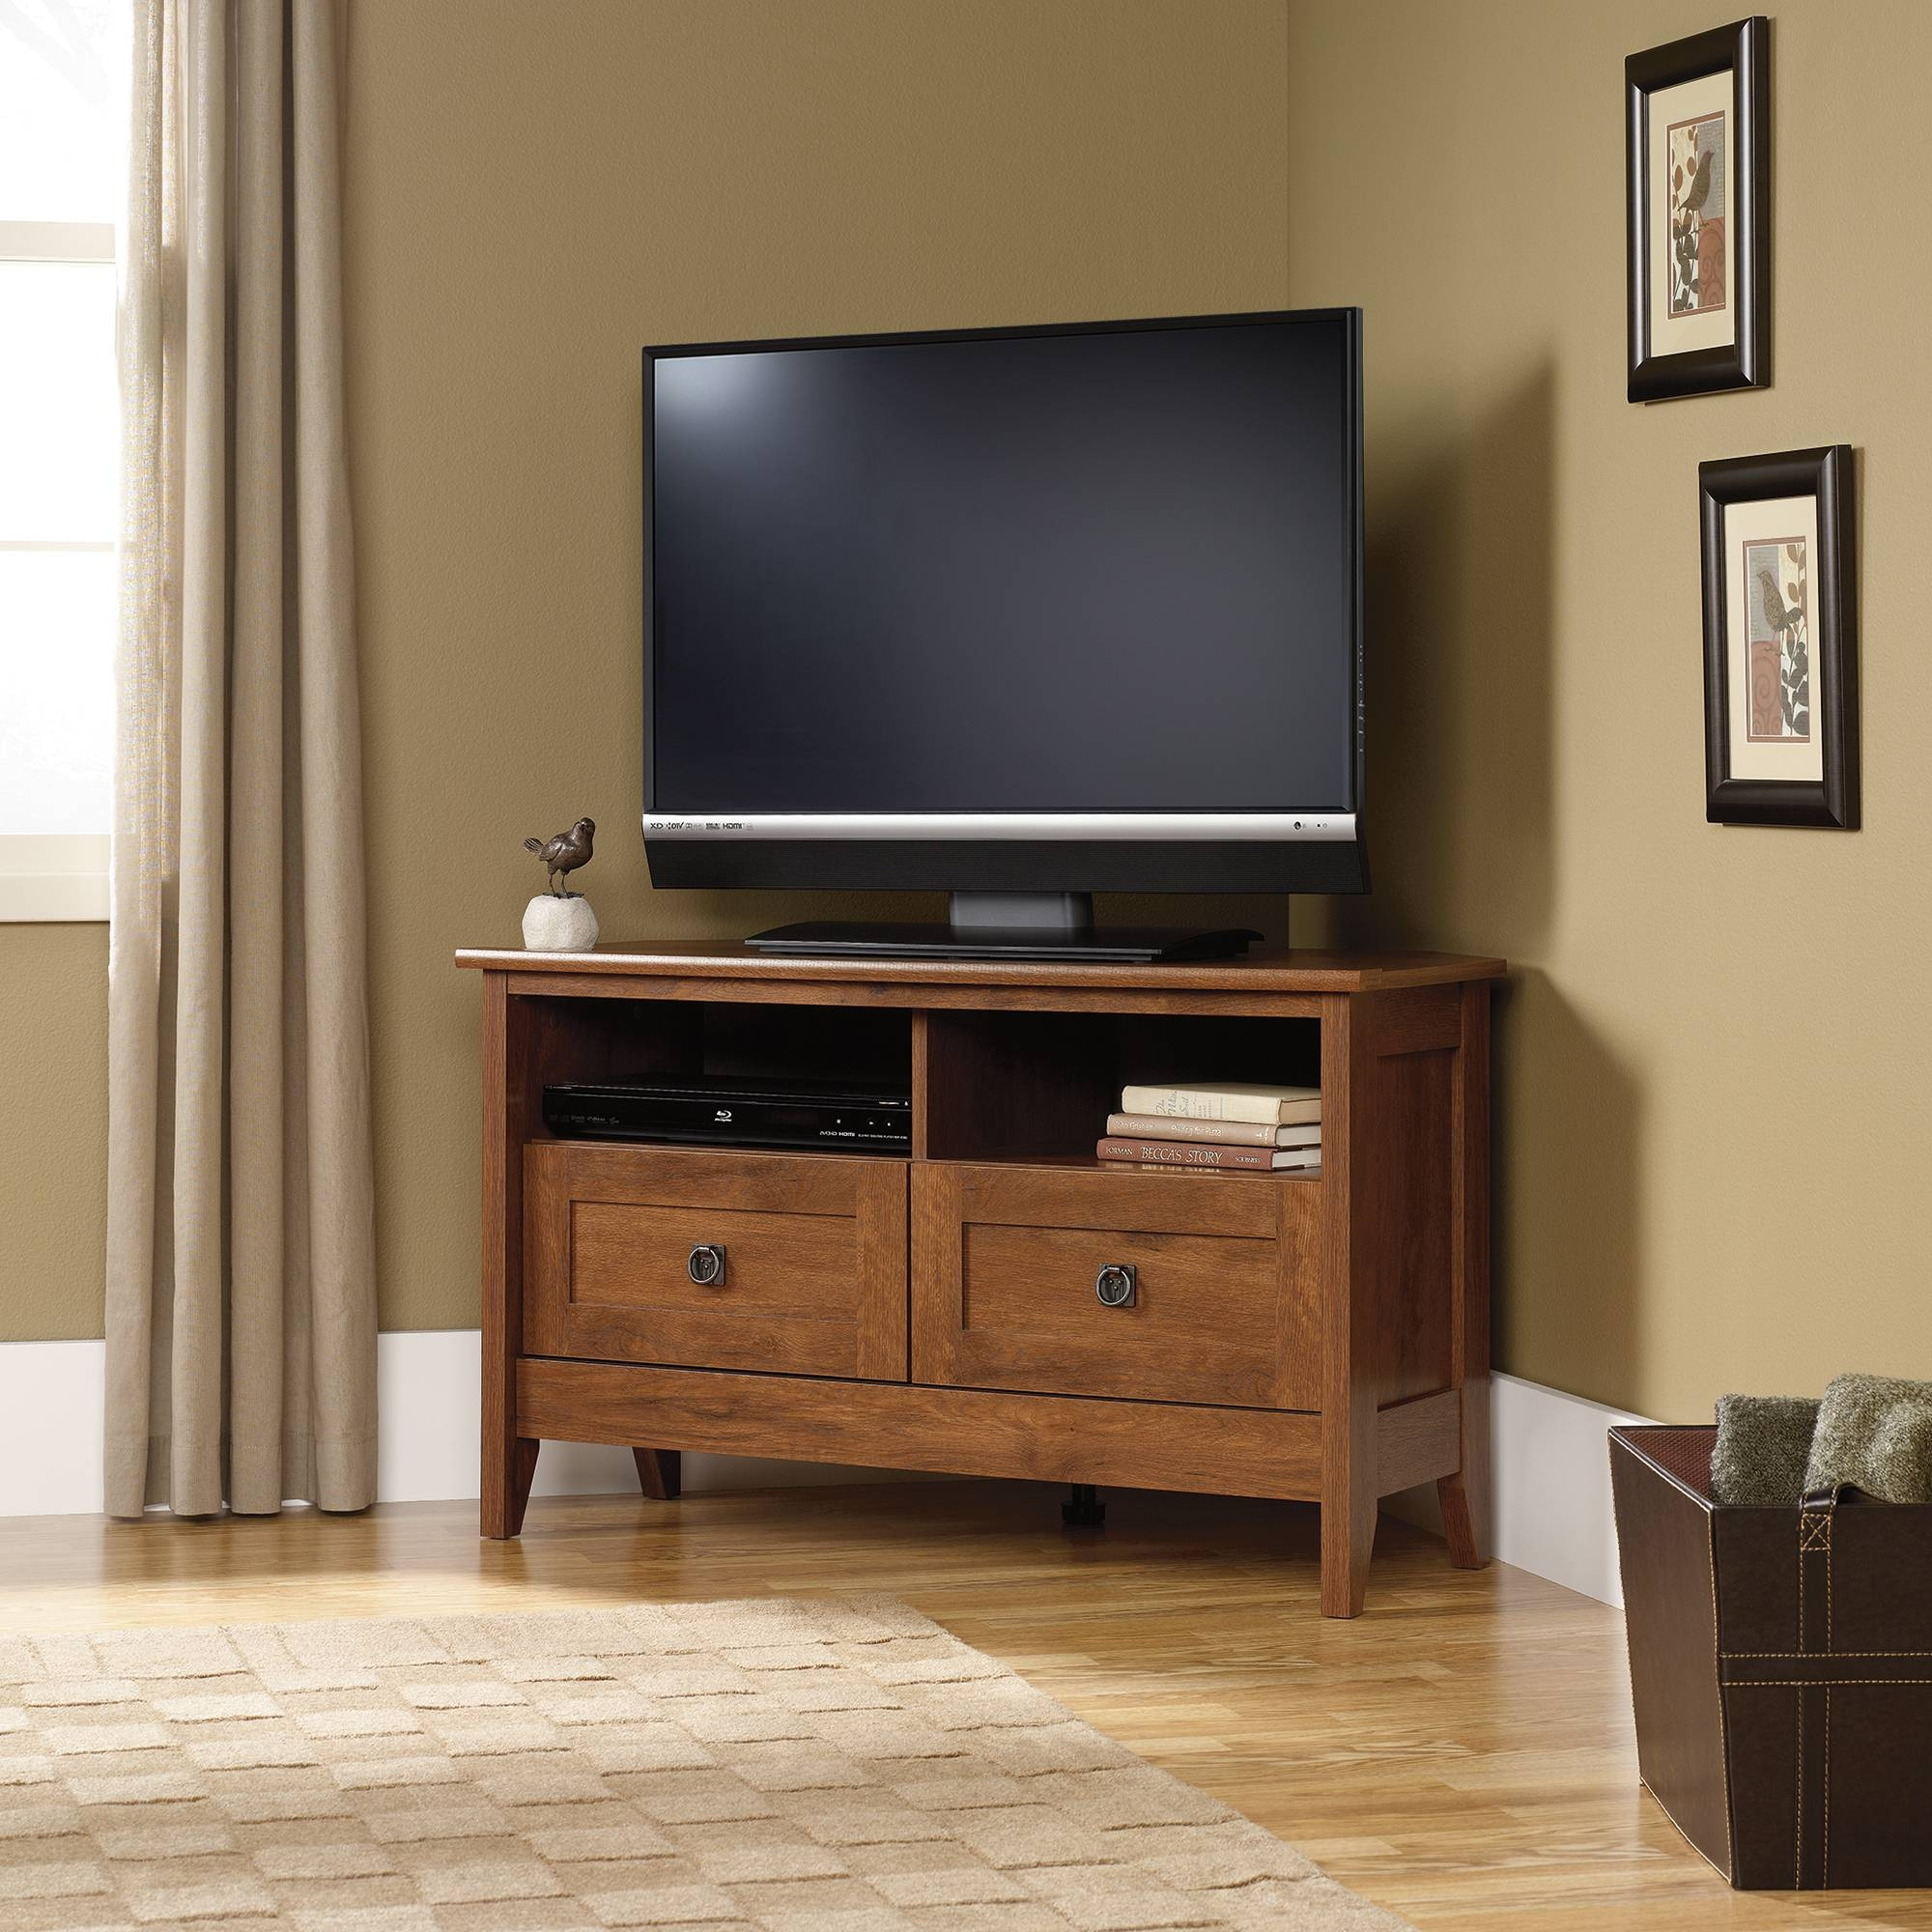 Sauder Select | Corner Tv Stand | 410627 | Sauder Throughout Corner Tv Stands With Drawers (View 15 of 15)